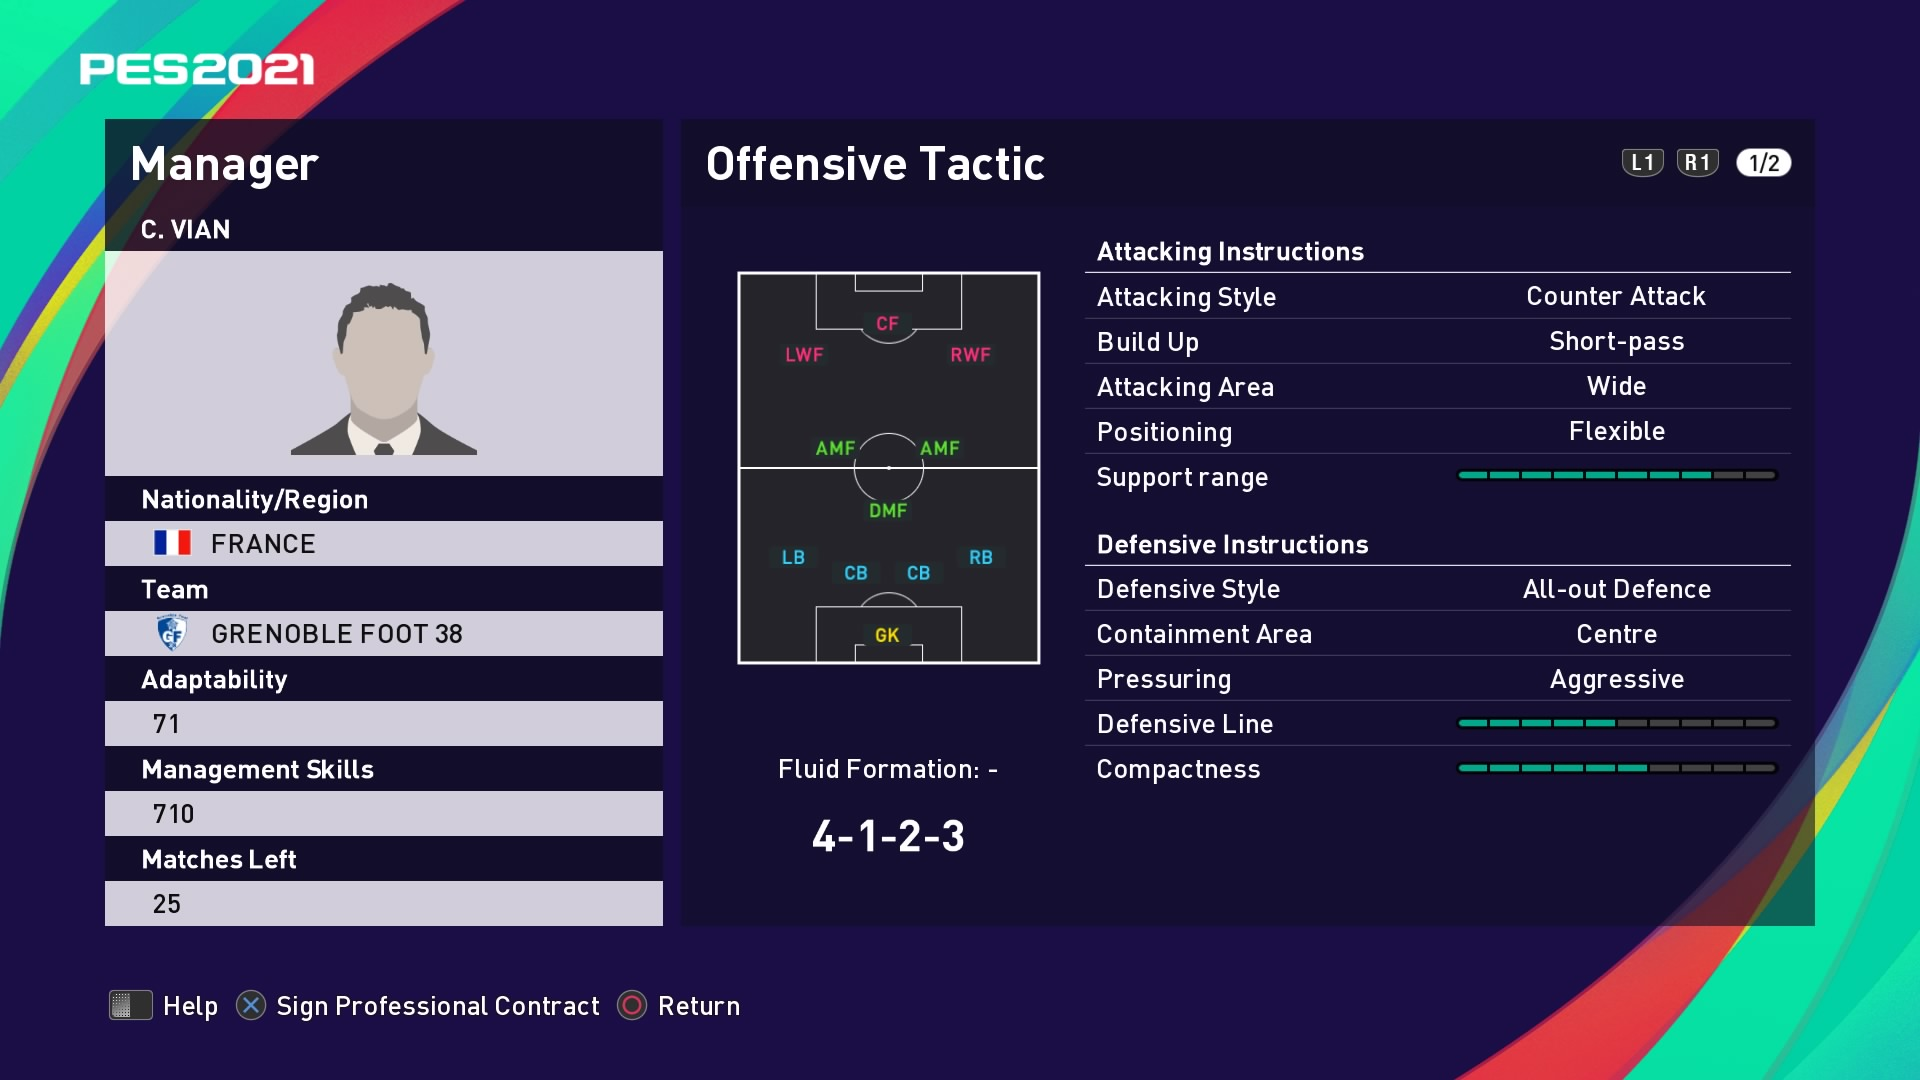 C. Vian (Philippe Hinschberger) Offensive Tactic in PES 2021 myClub